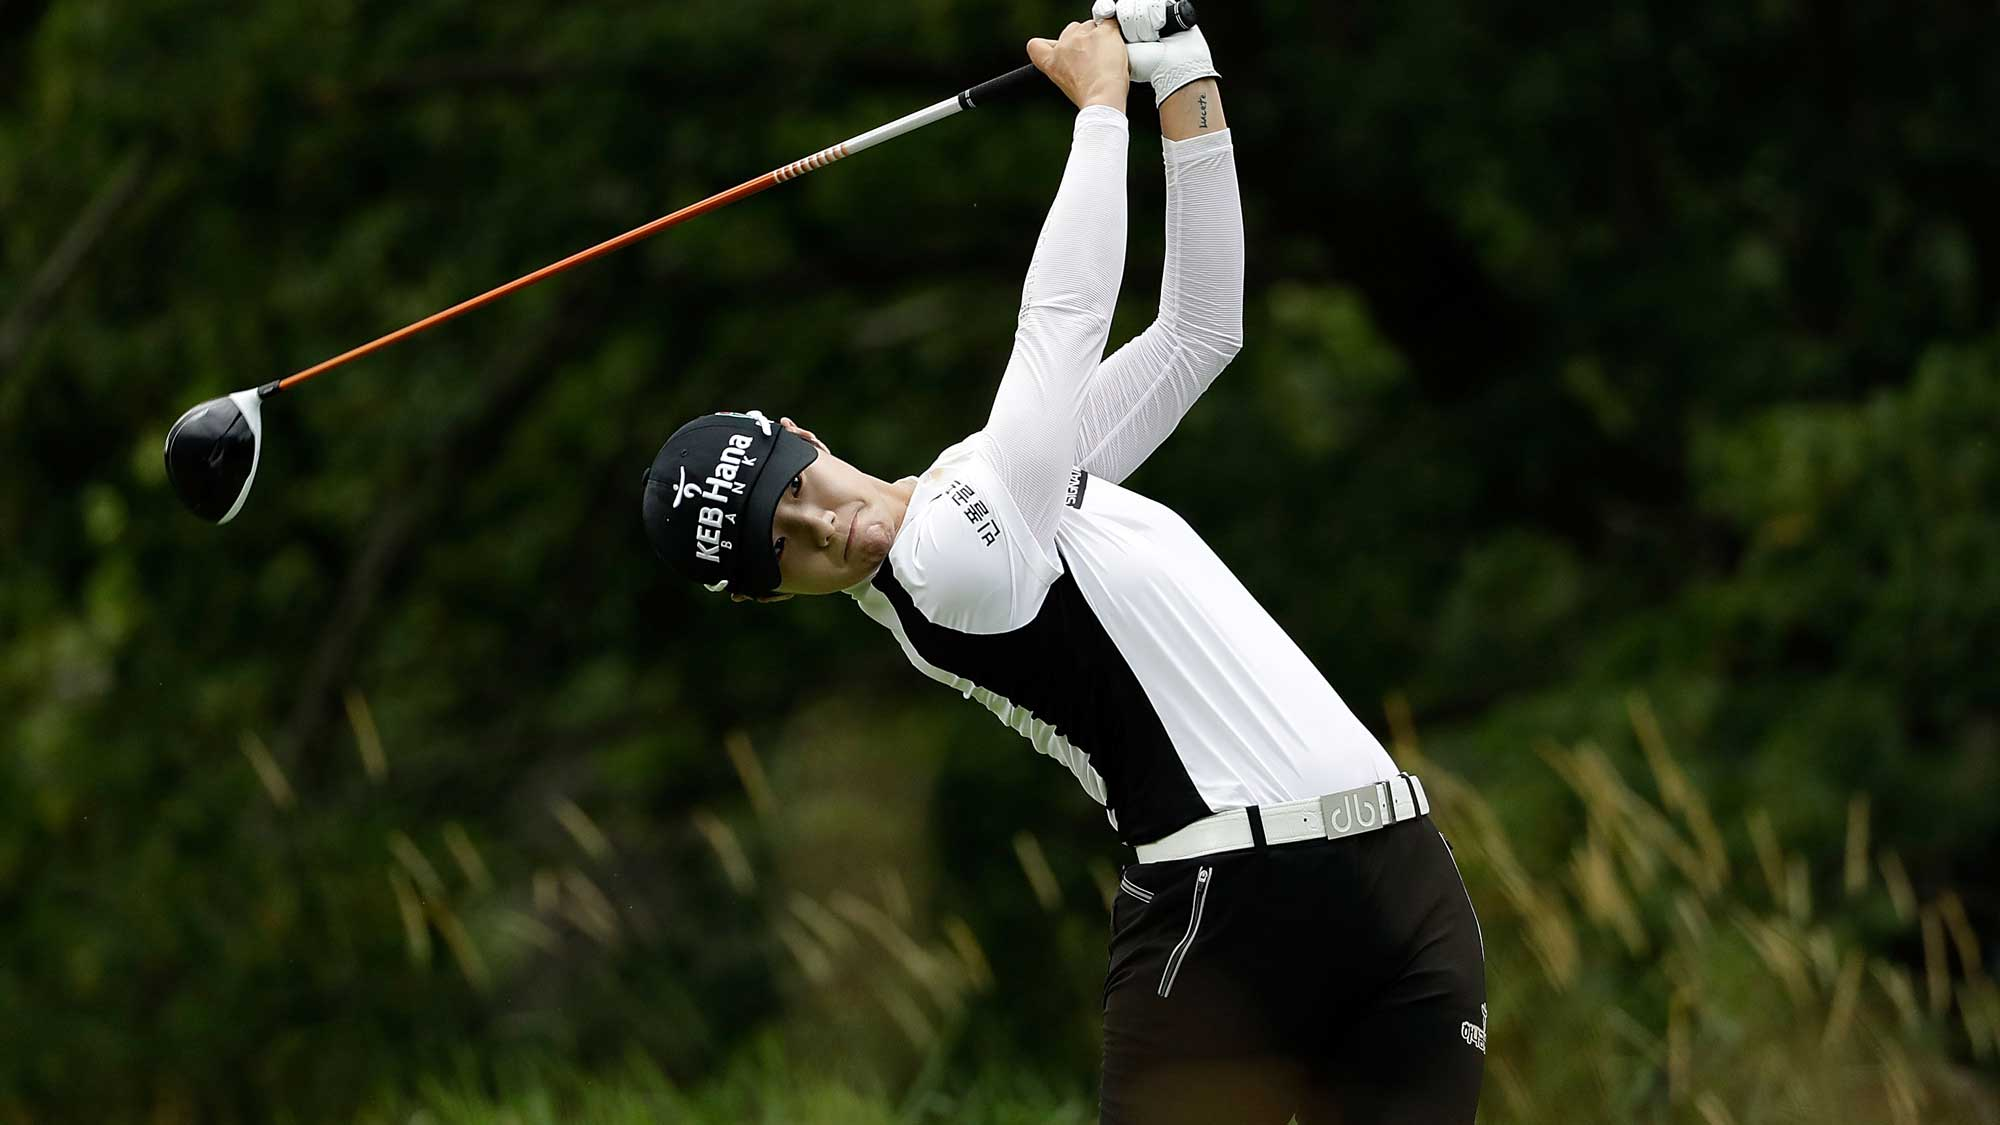 Sung Hyun Park of South Korea hits her tee shot on the fifth hole during the second round of the 2017 KPMG PGA Championship